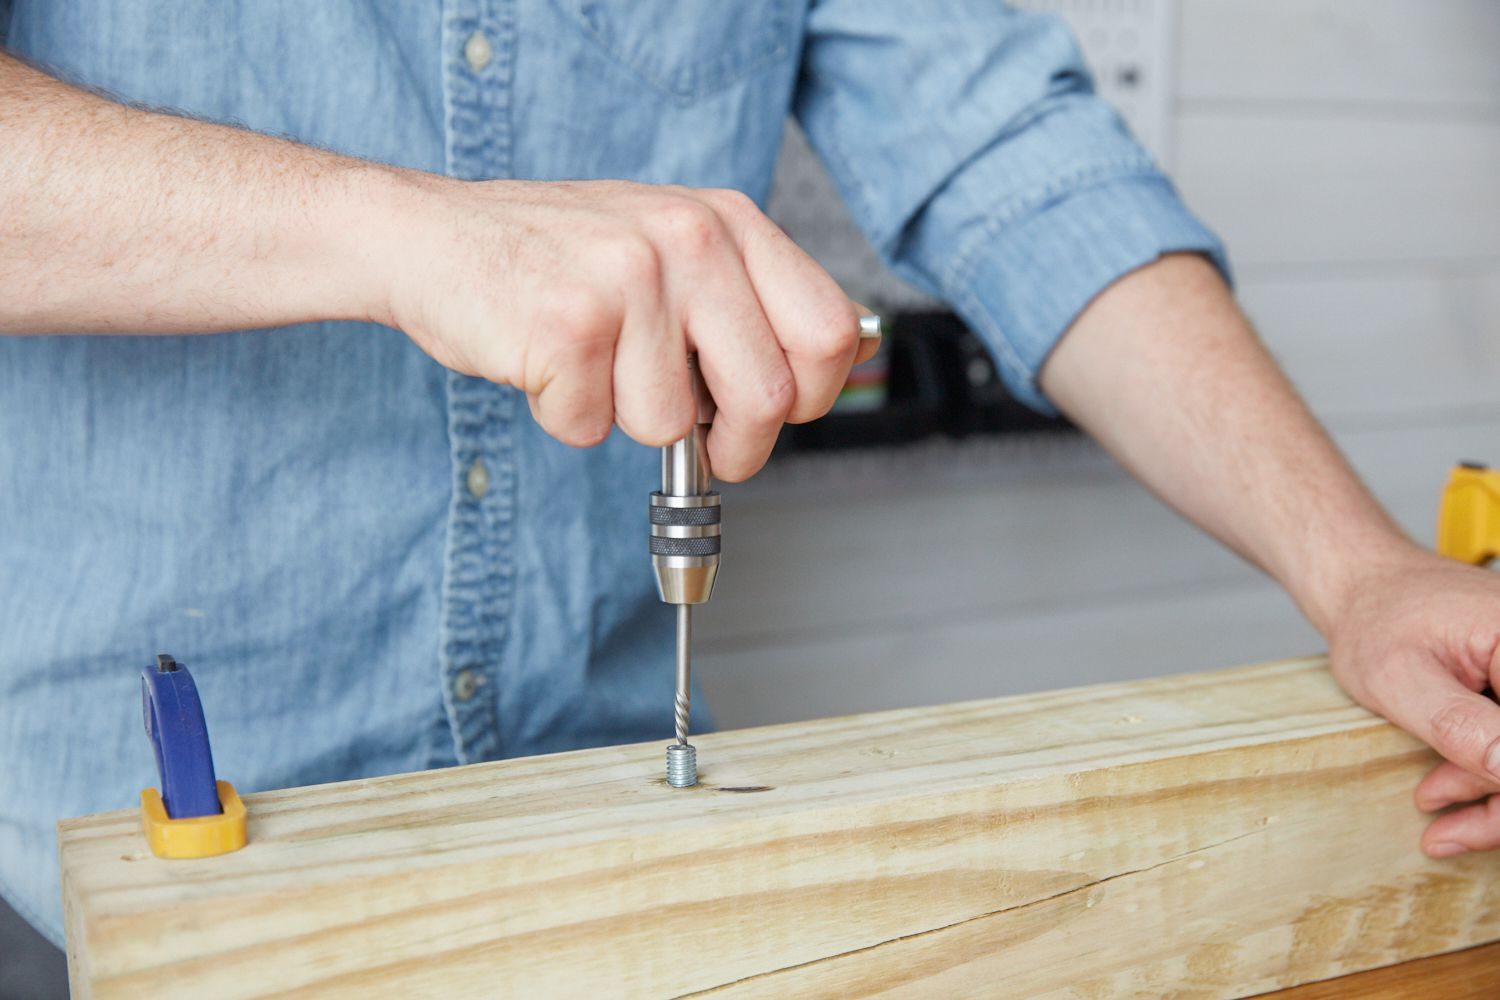 How To Remove A Damaged Screw Or Bolt With An Extractor